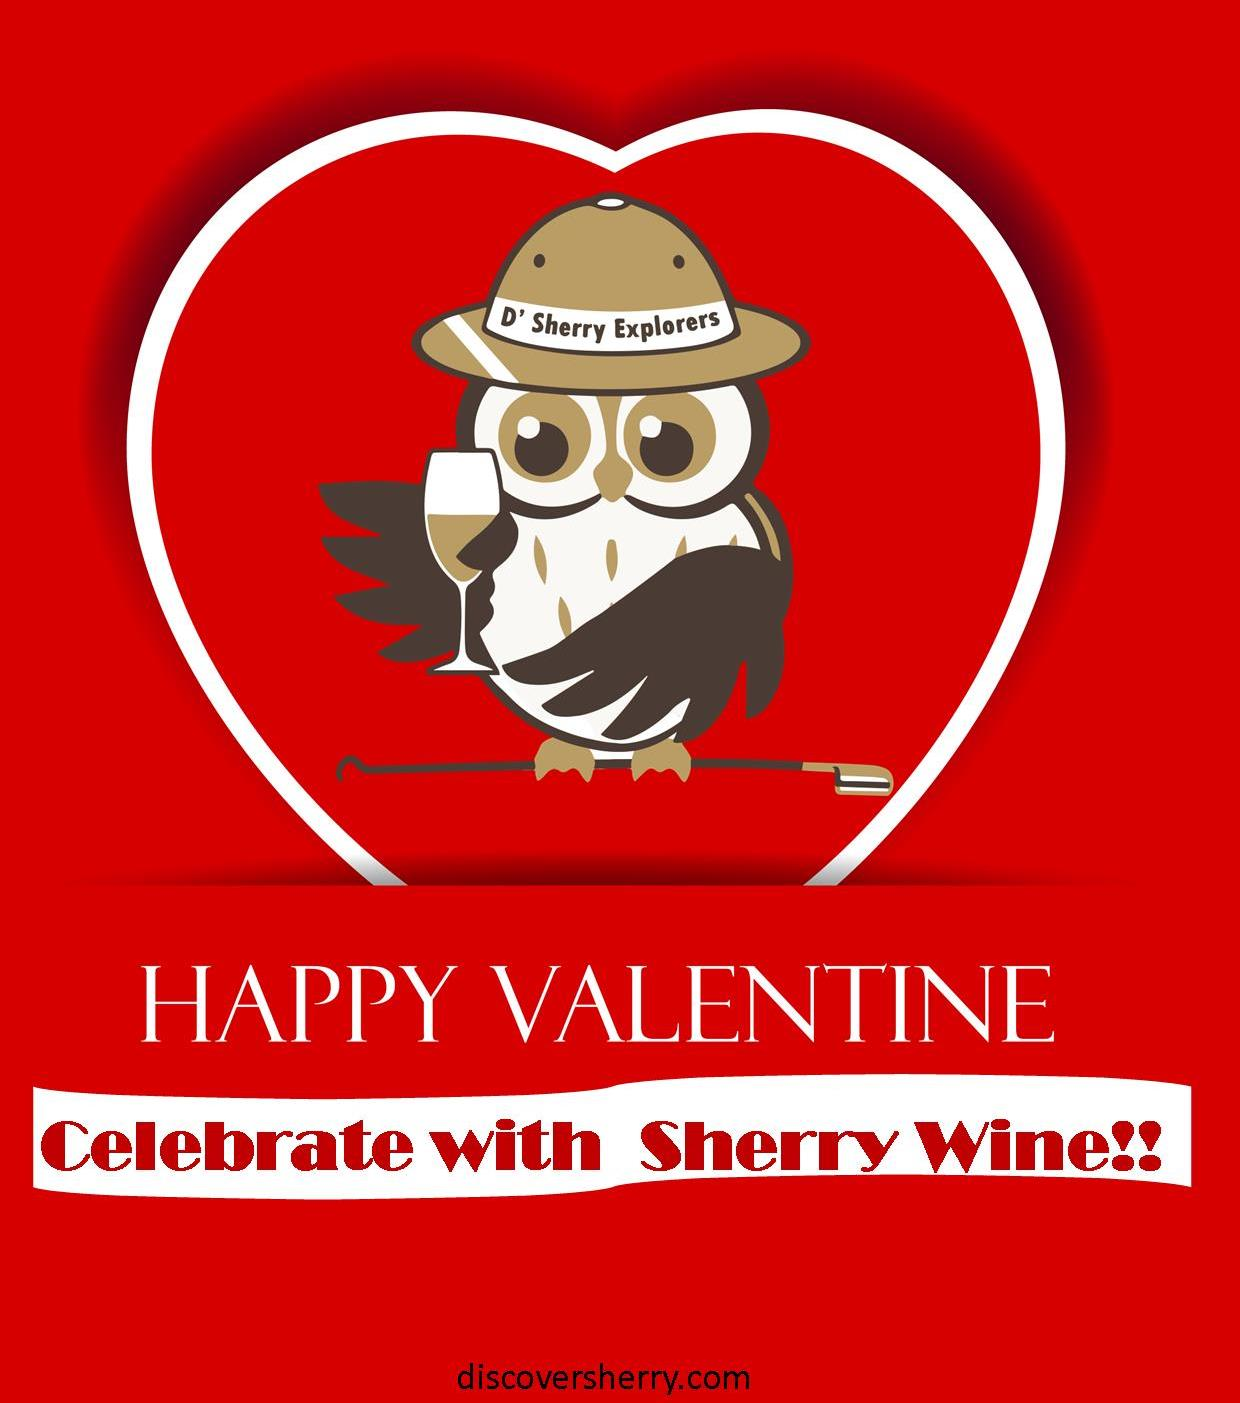 Happy Valentine´s Day to all the Sherry Explorers in the world!